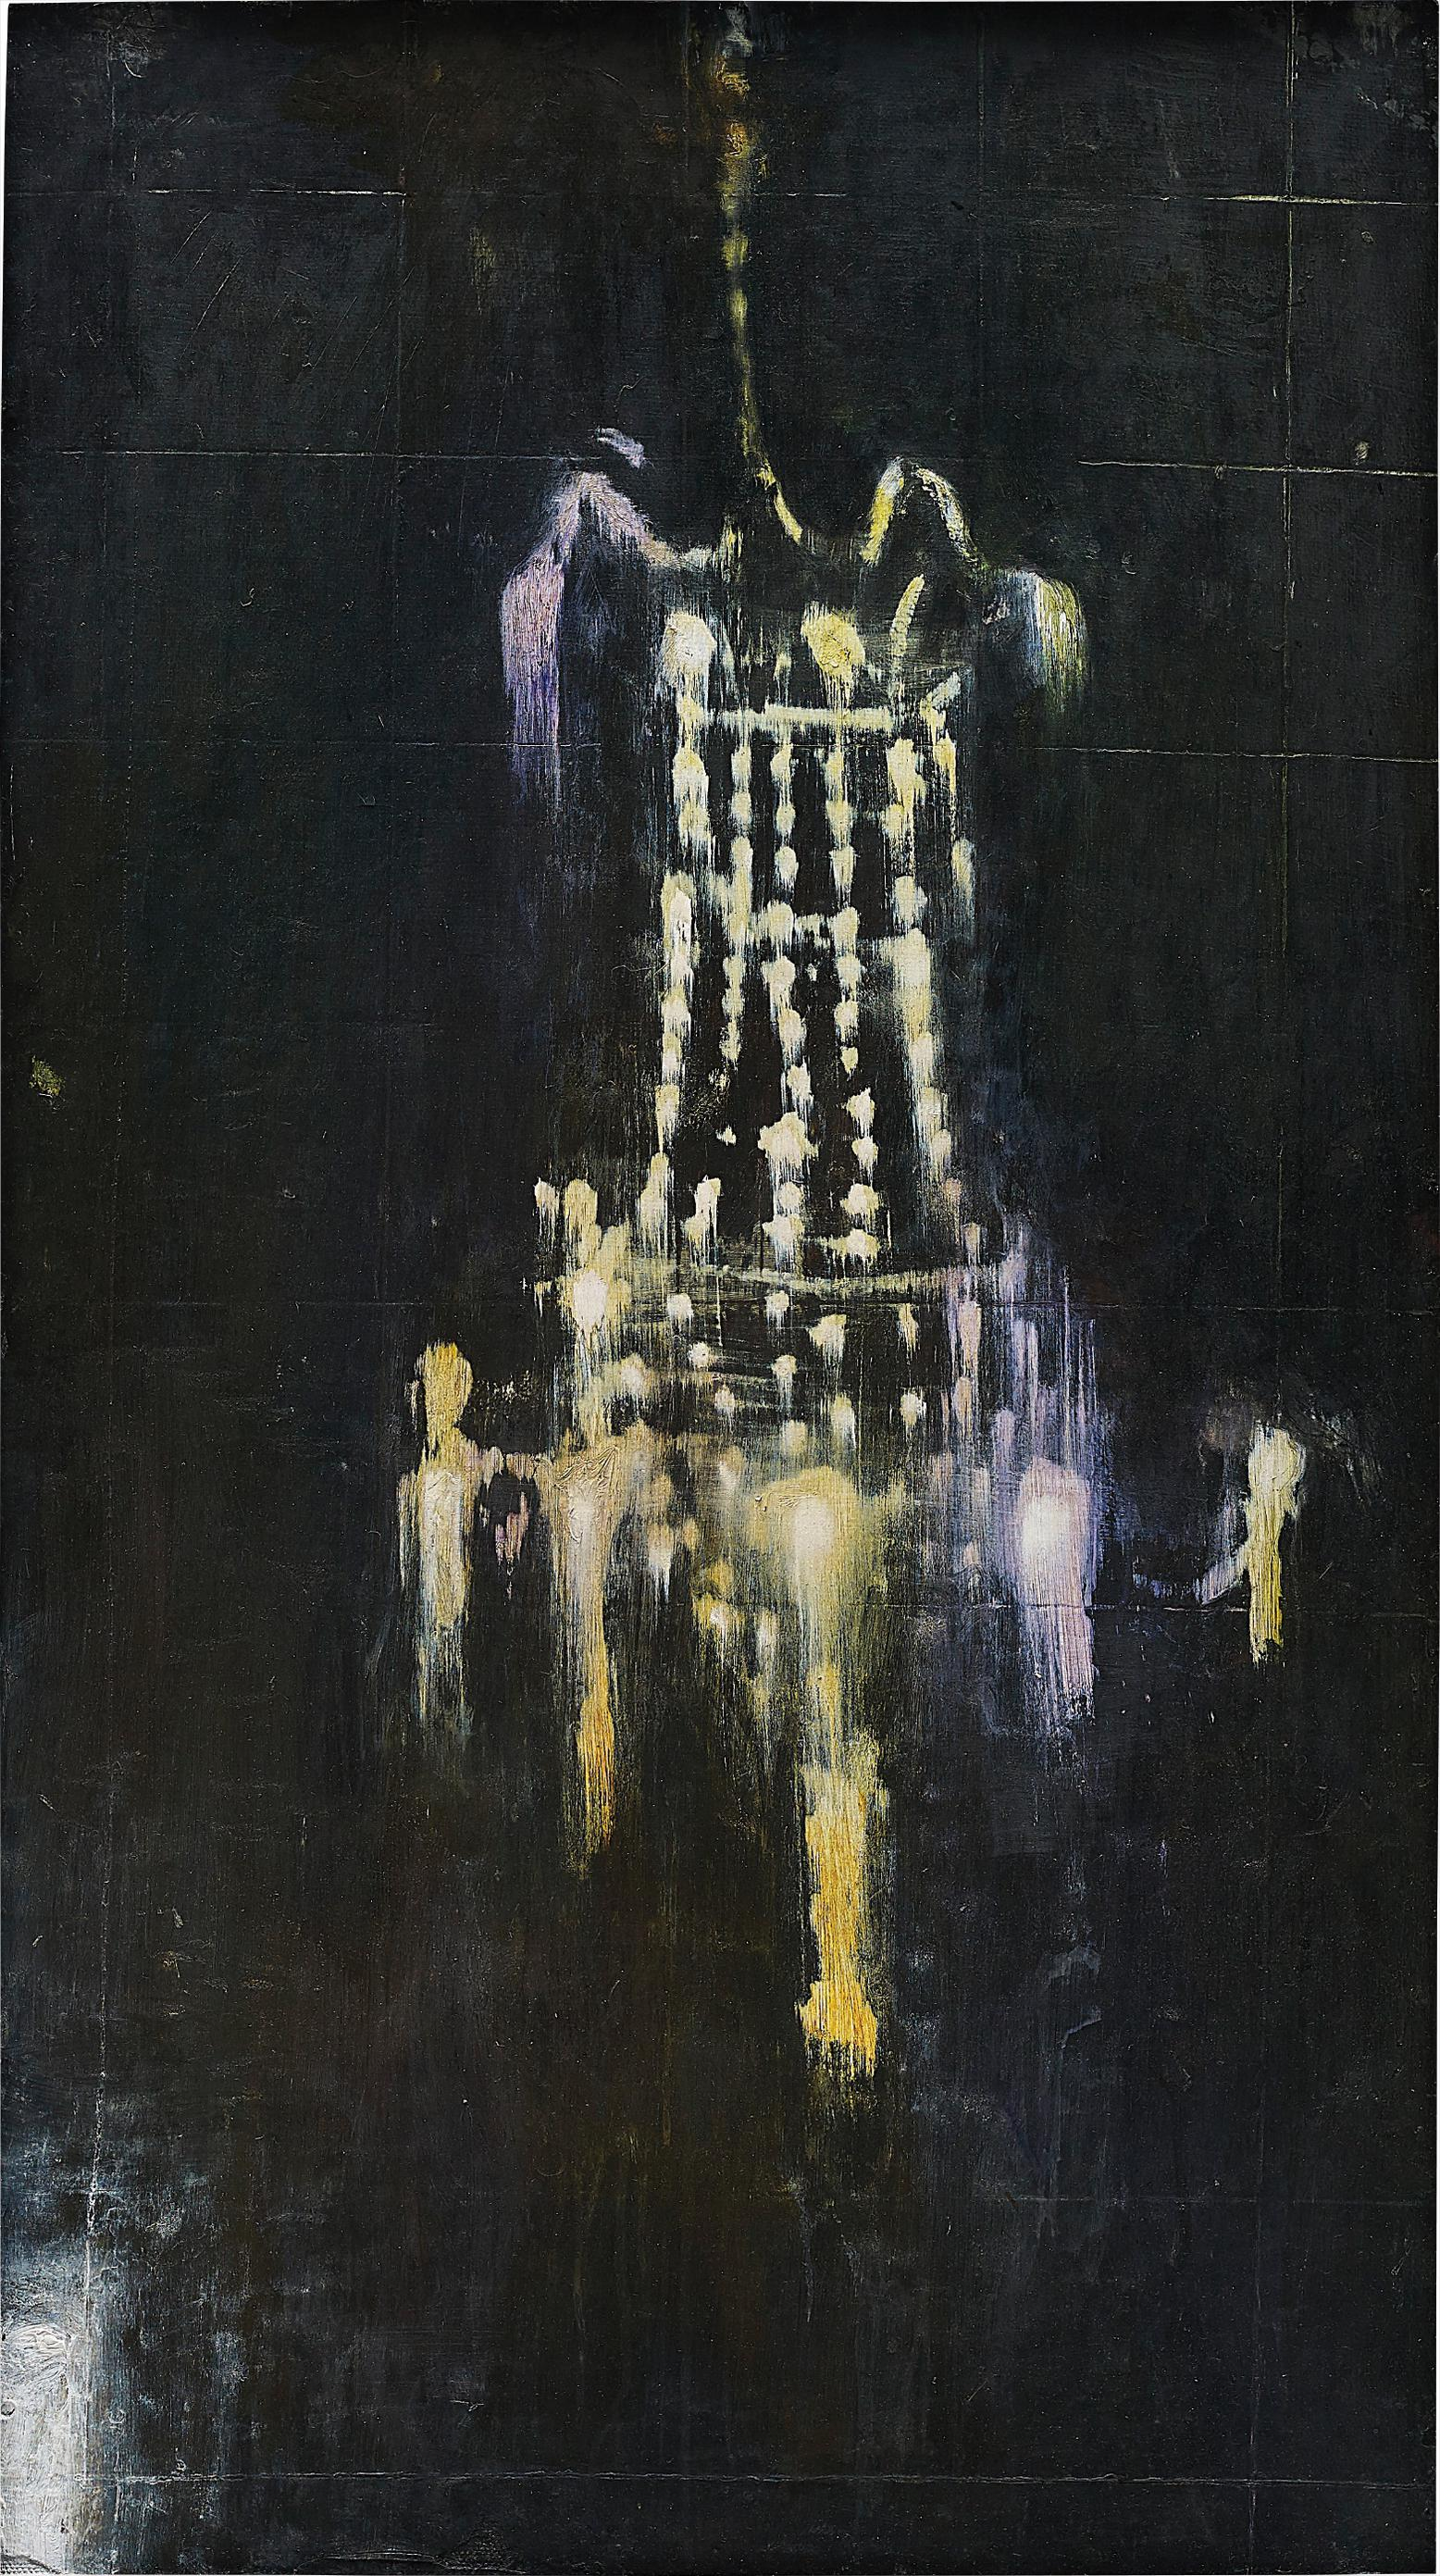 Ross Bleckner-Untitled (Chandelier Painting)-1984